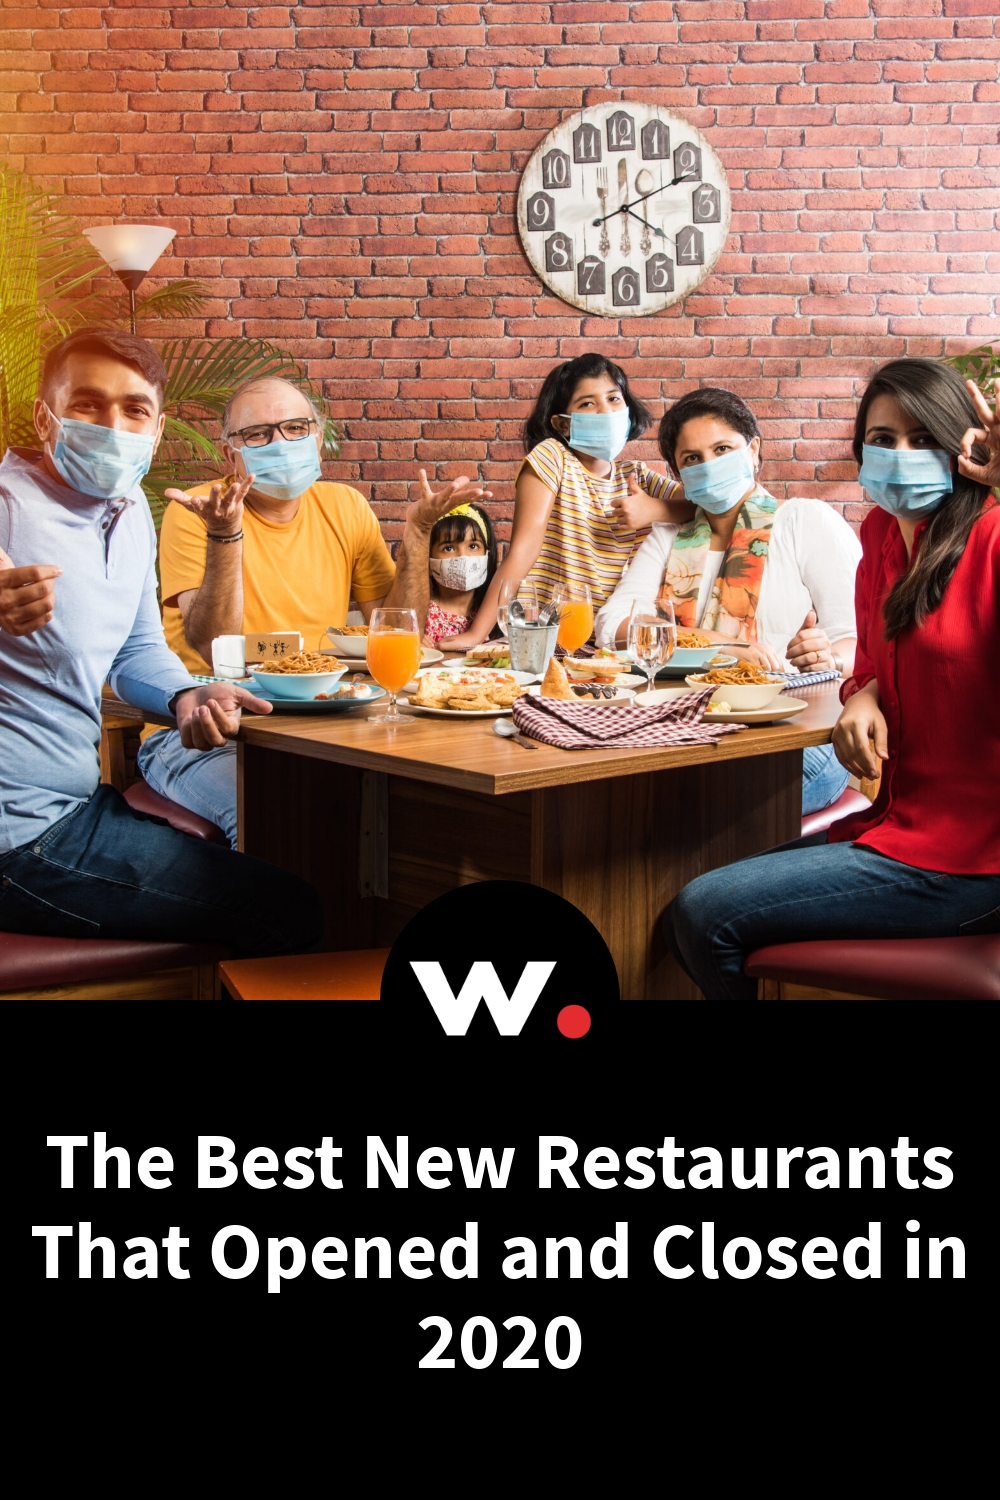 The Best New Restaurants That Opened and Closed in 2020